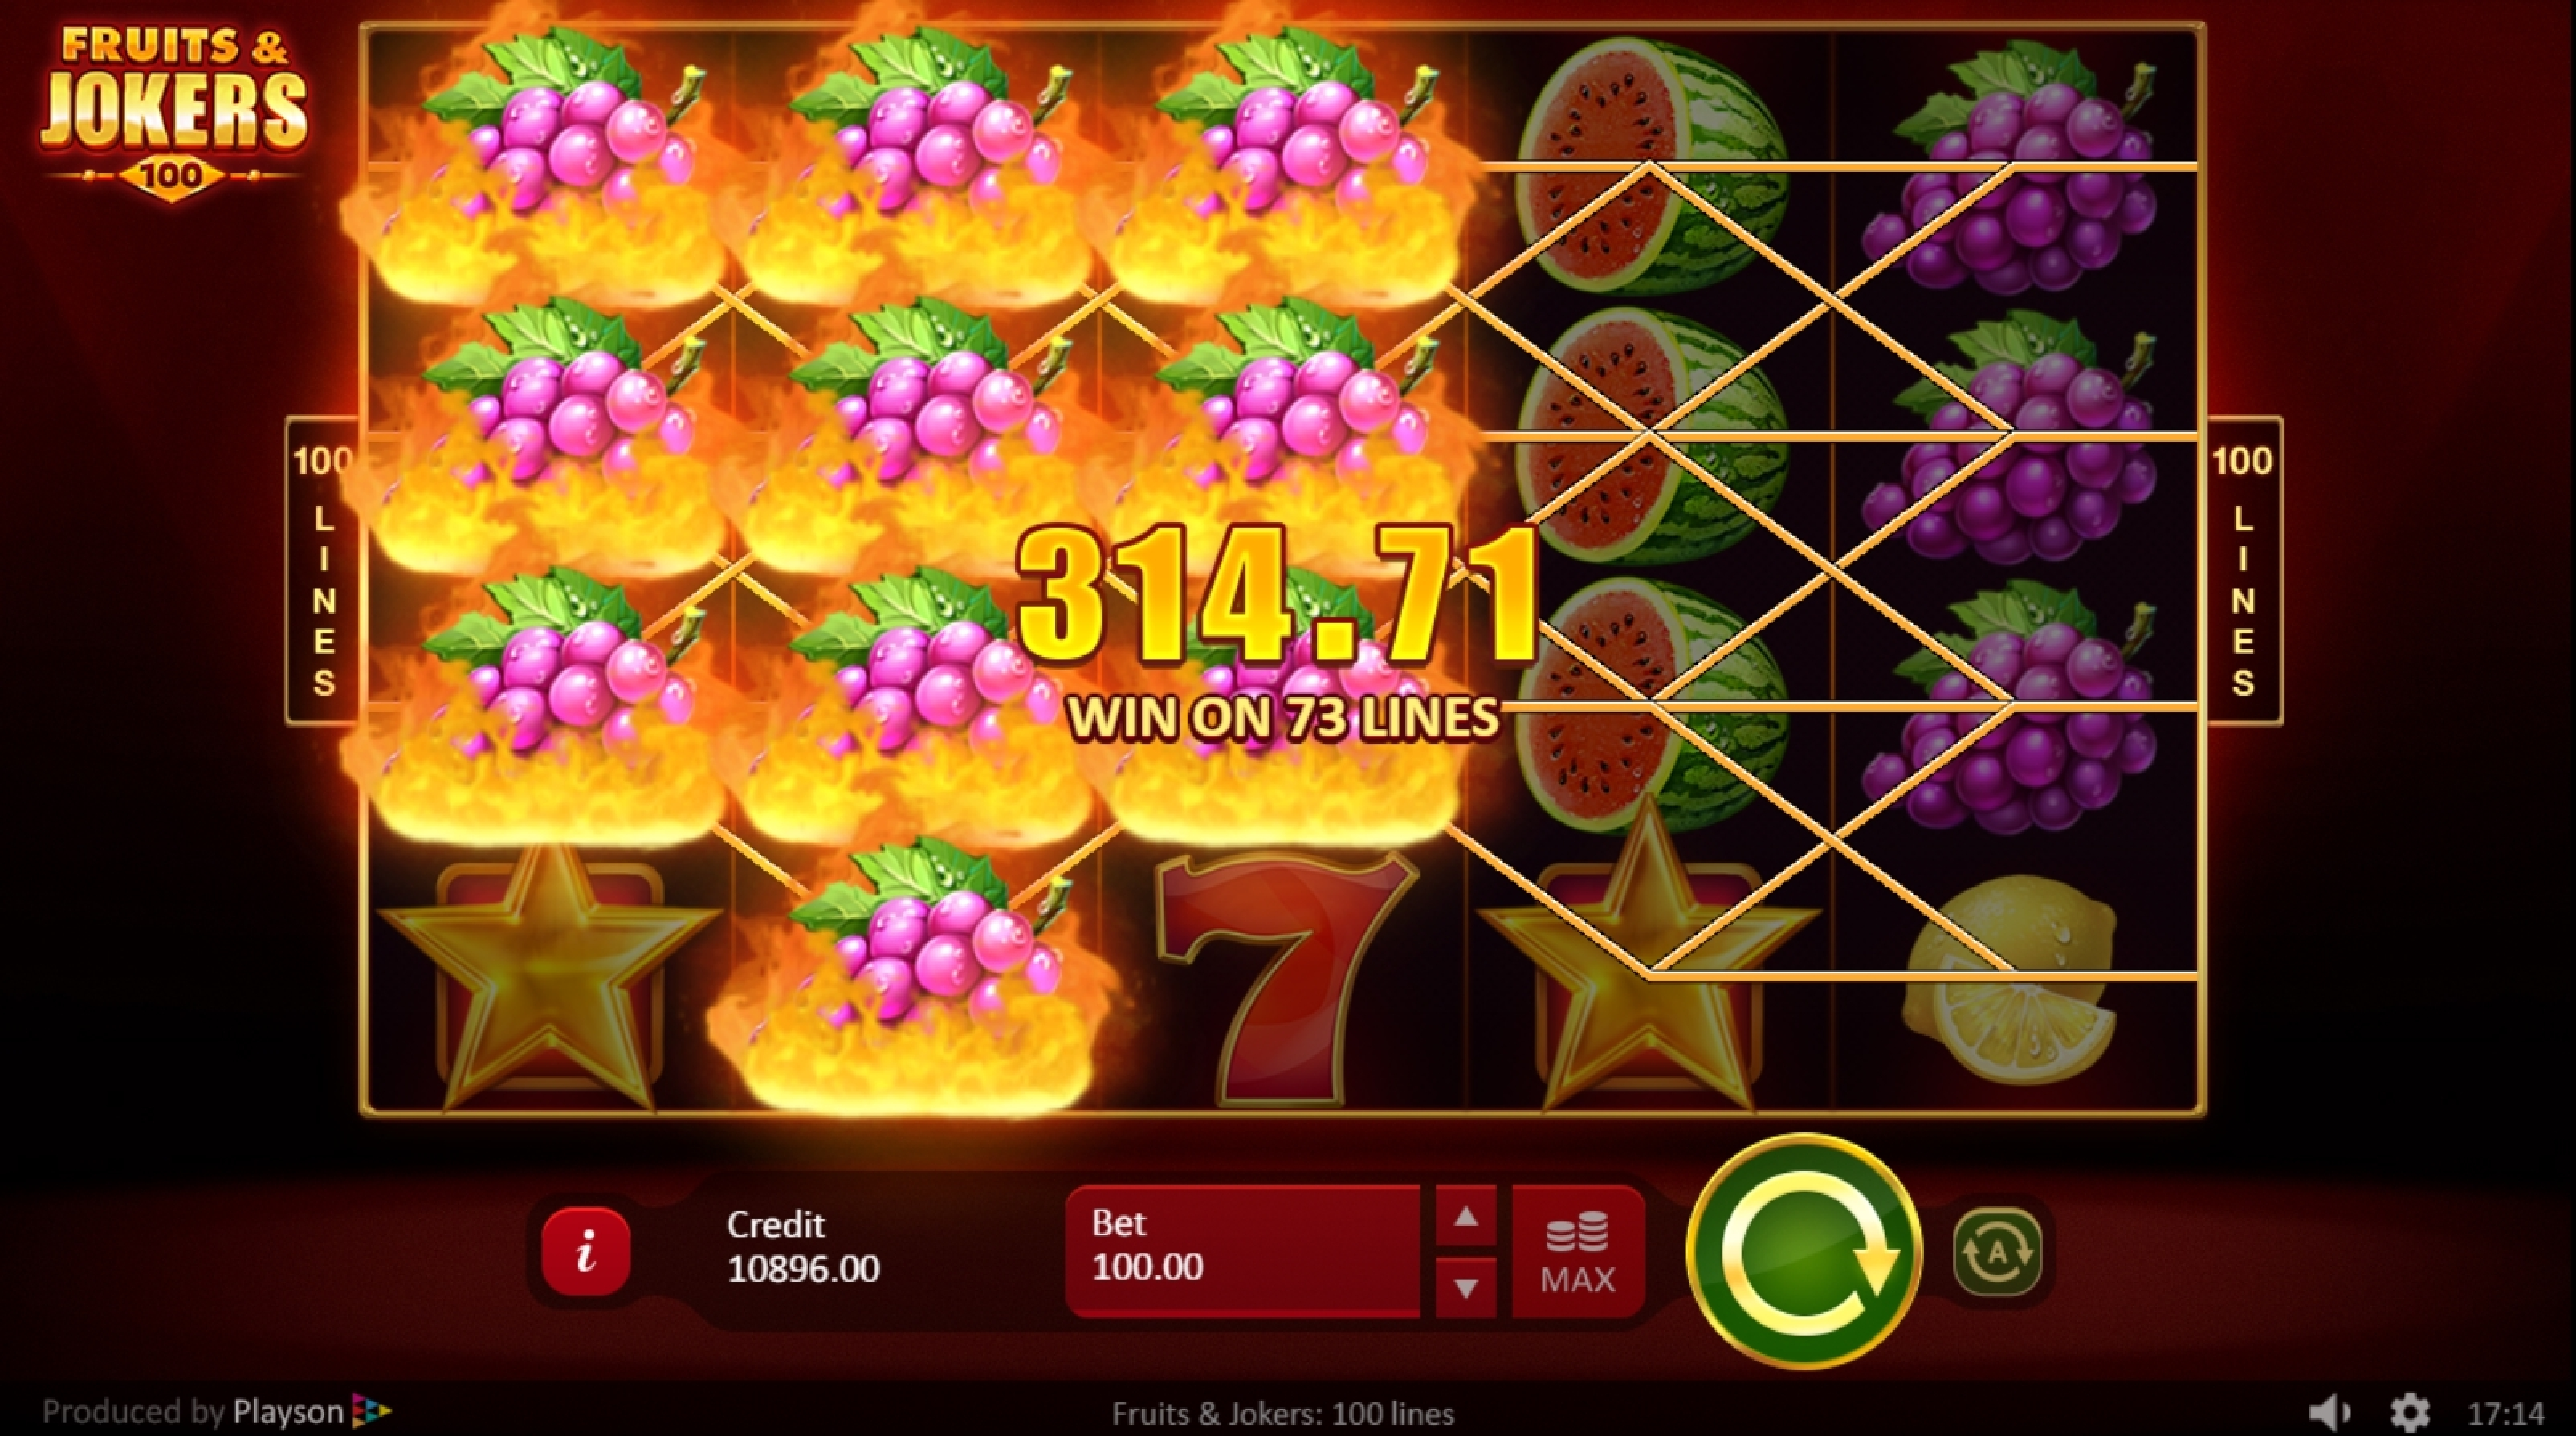 Win Money in Fruits & Jokers: 100 lines Free Slot Game by Playson